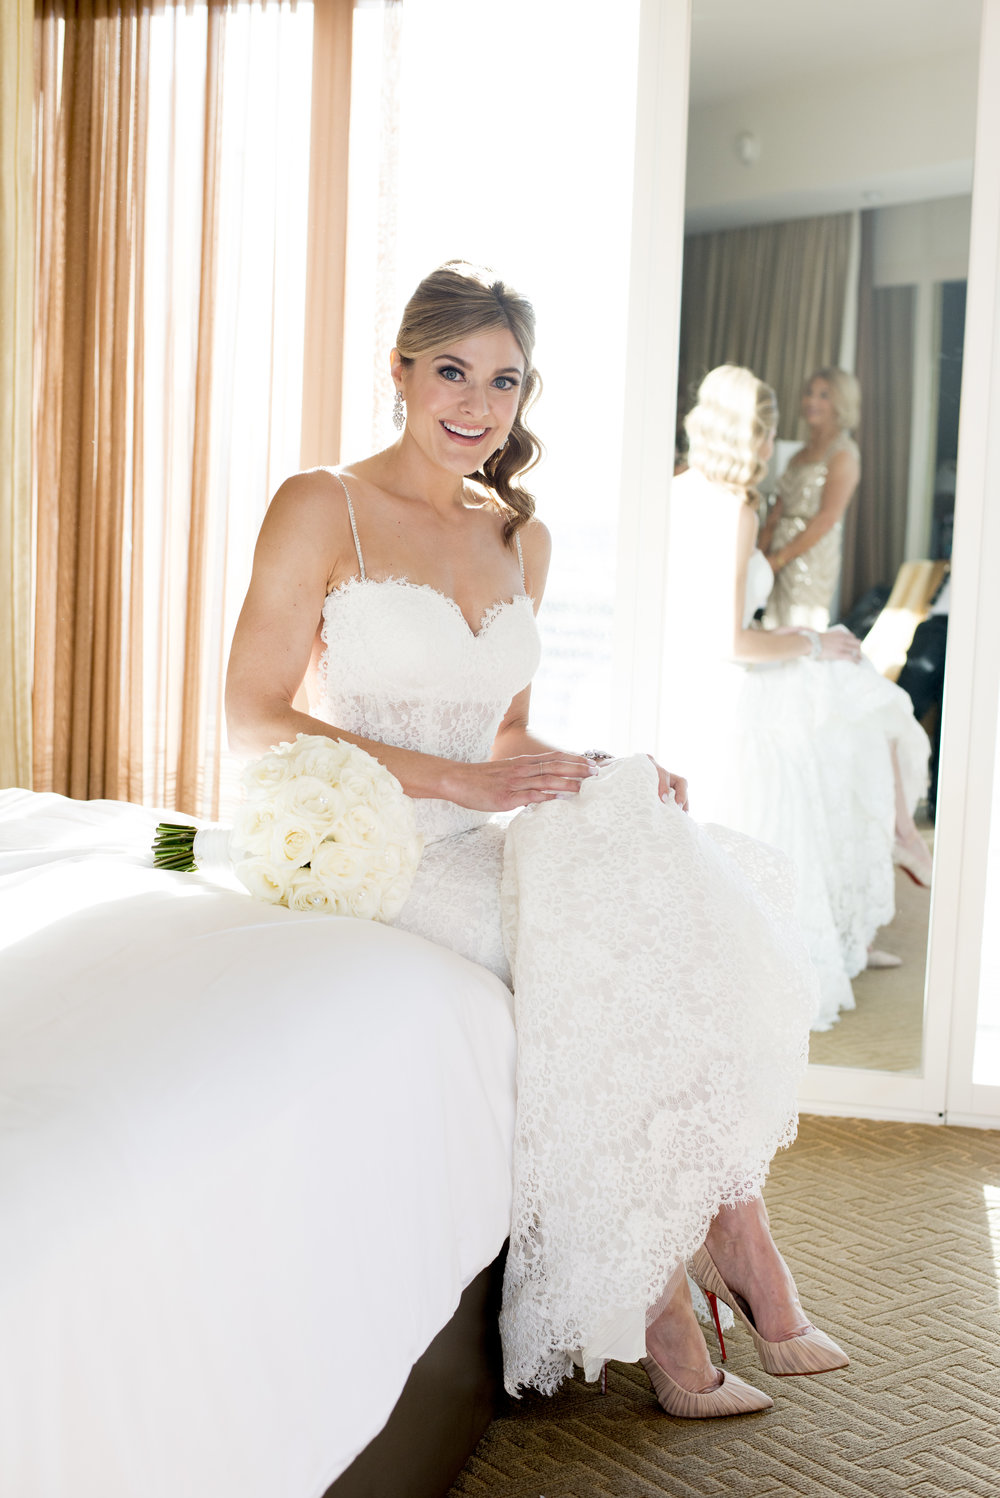 Bridal Portrait of Jennifer Beasley in P'Nina Tornai. Image by AltF.